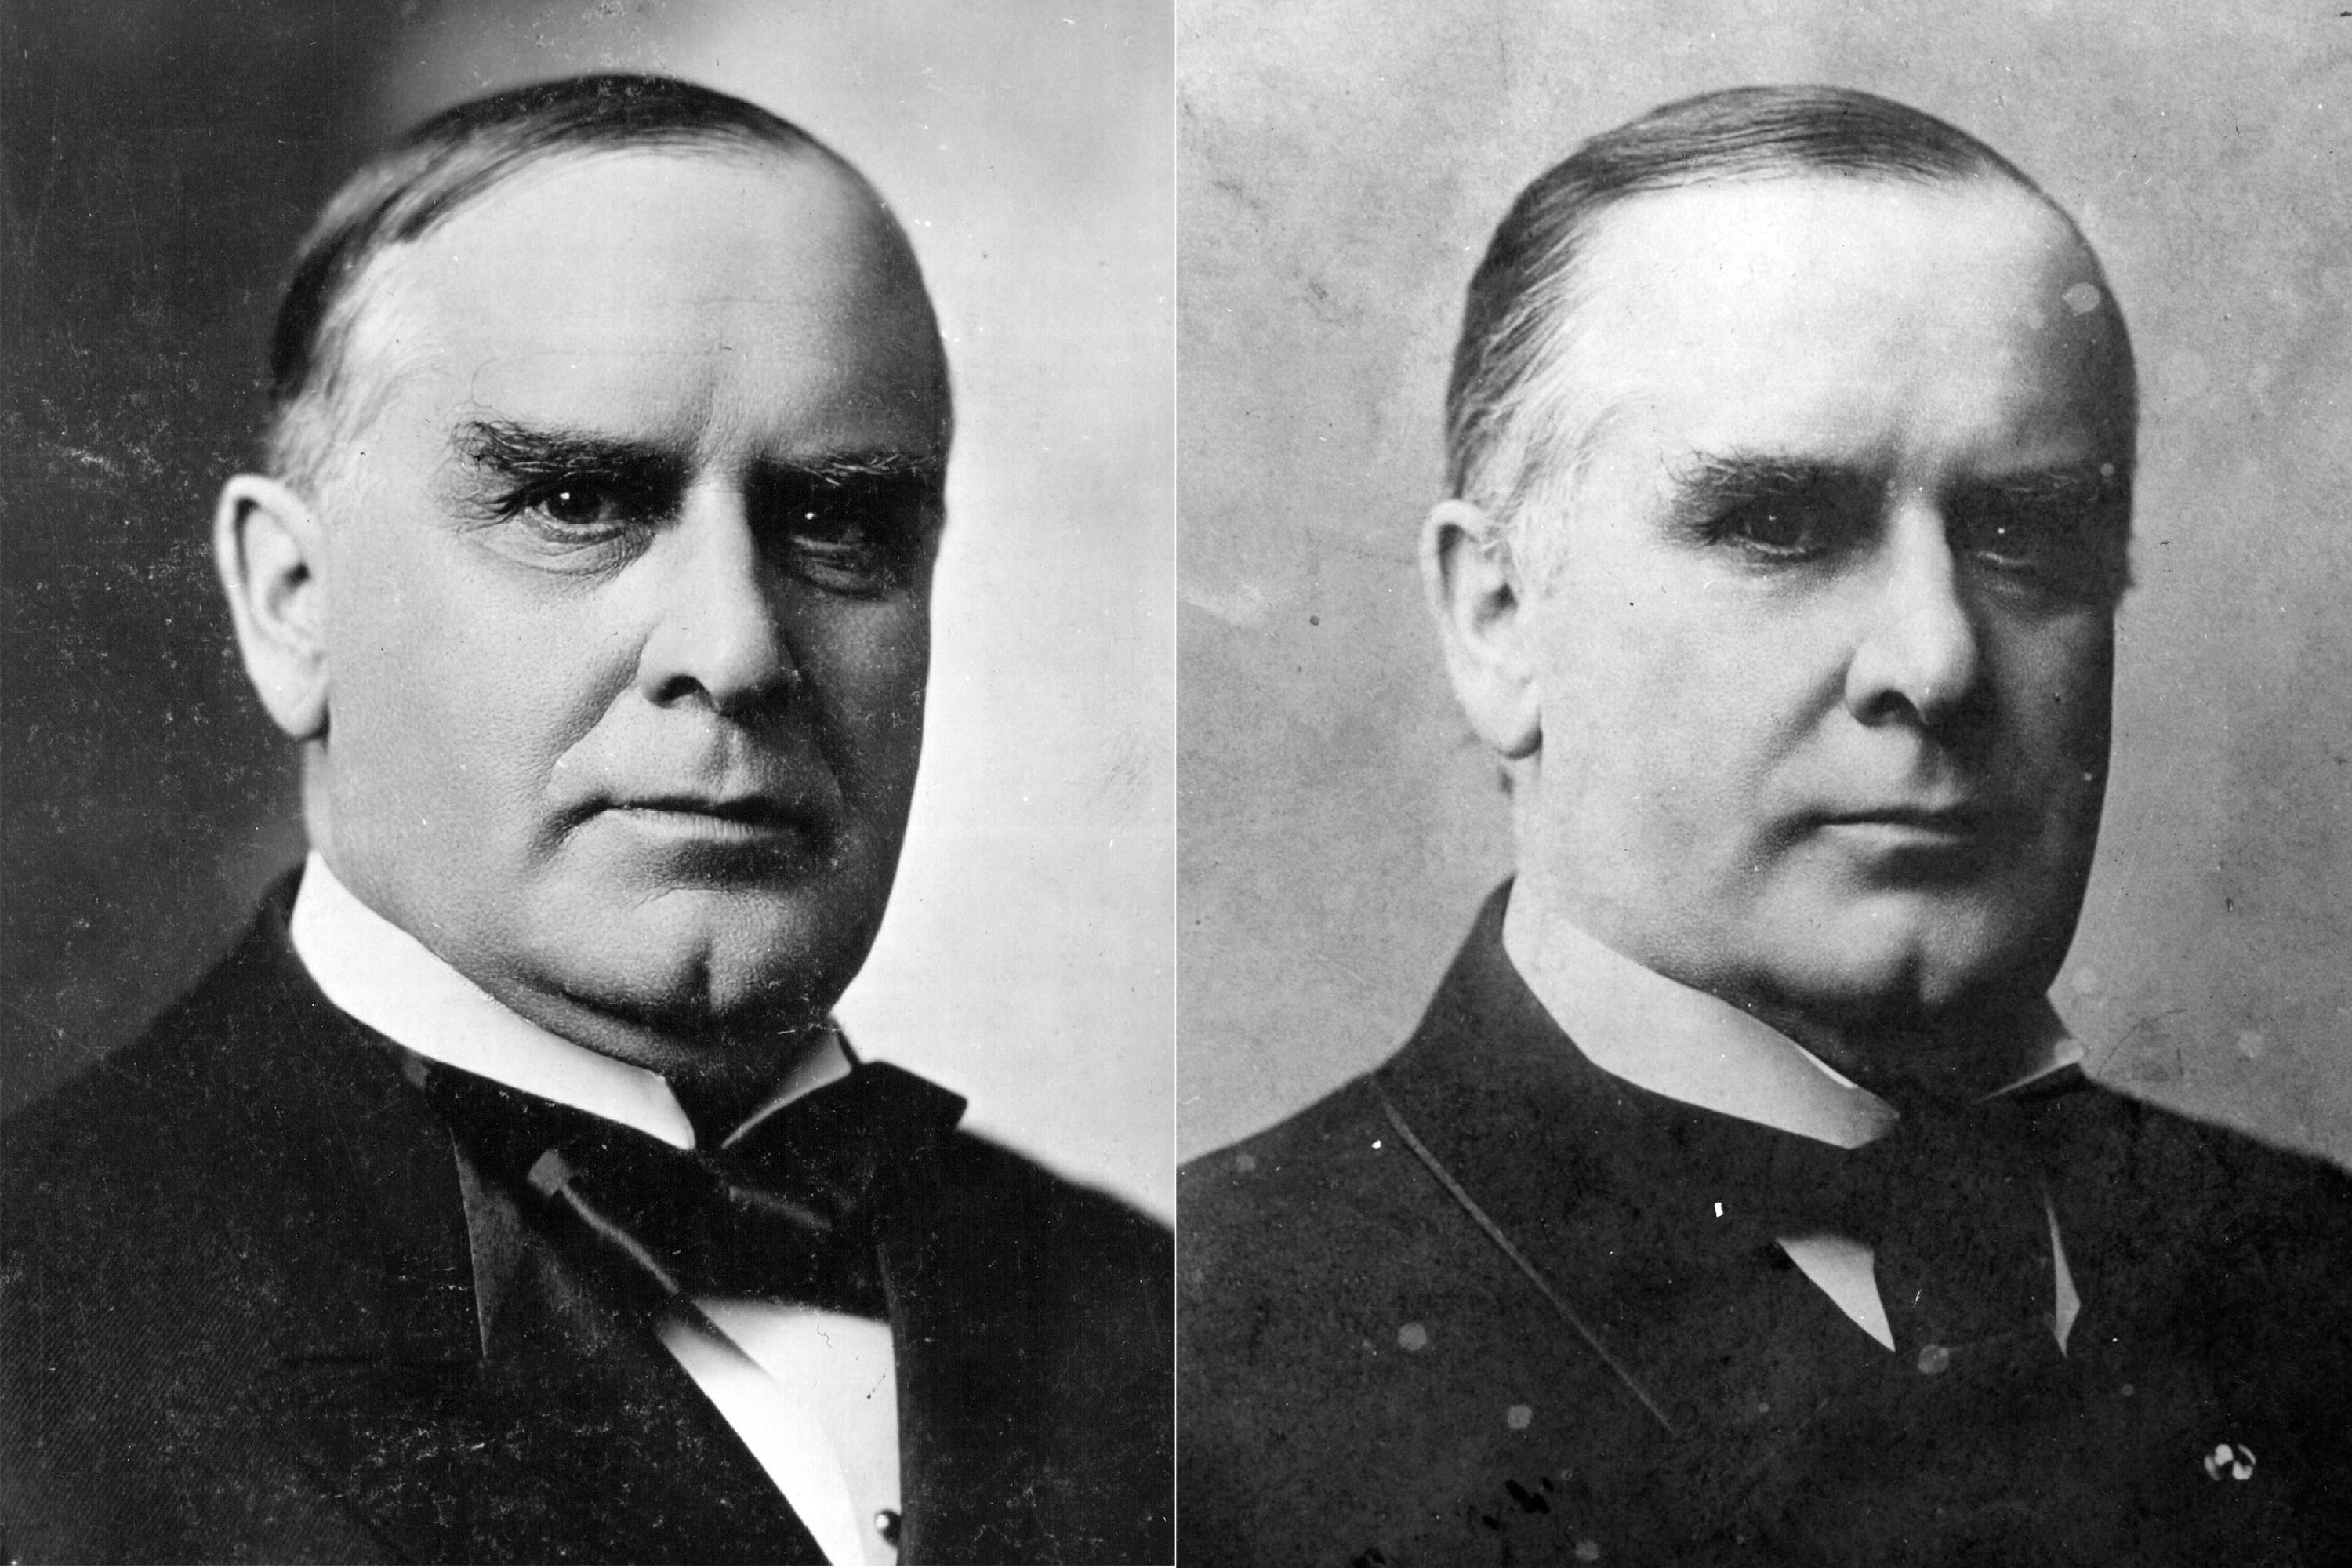 William McKinley - Presidents Before And After Serving In Office